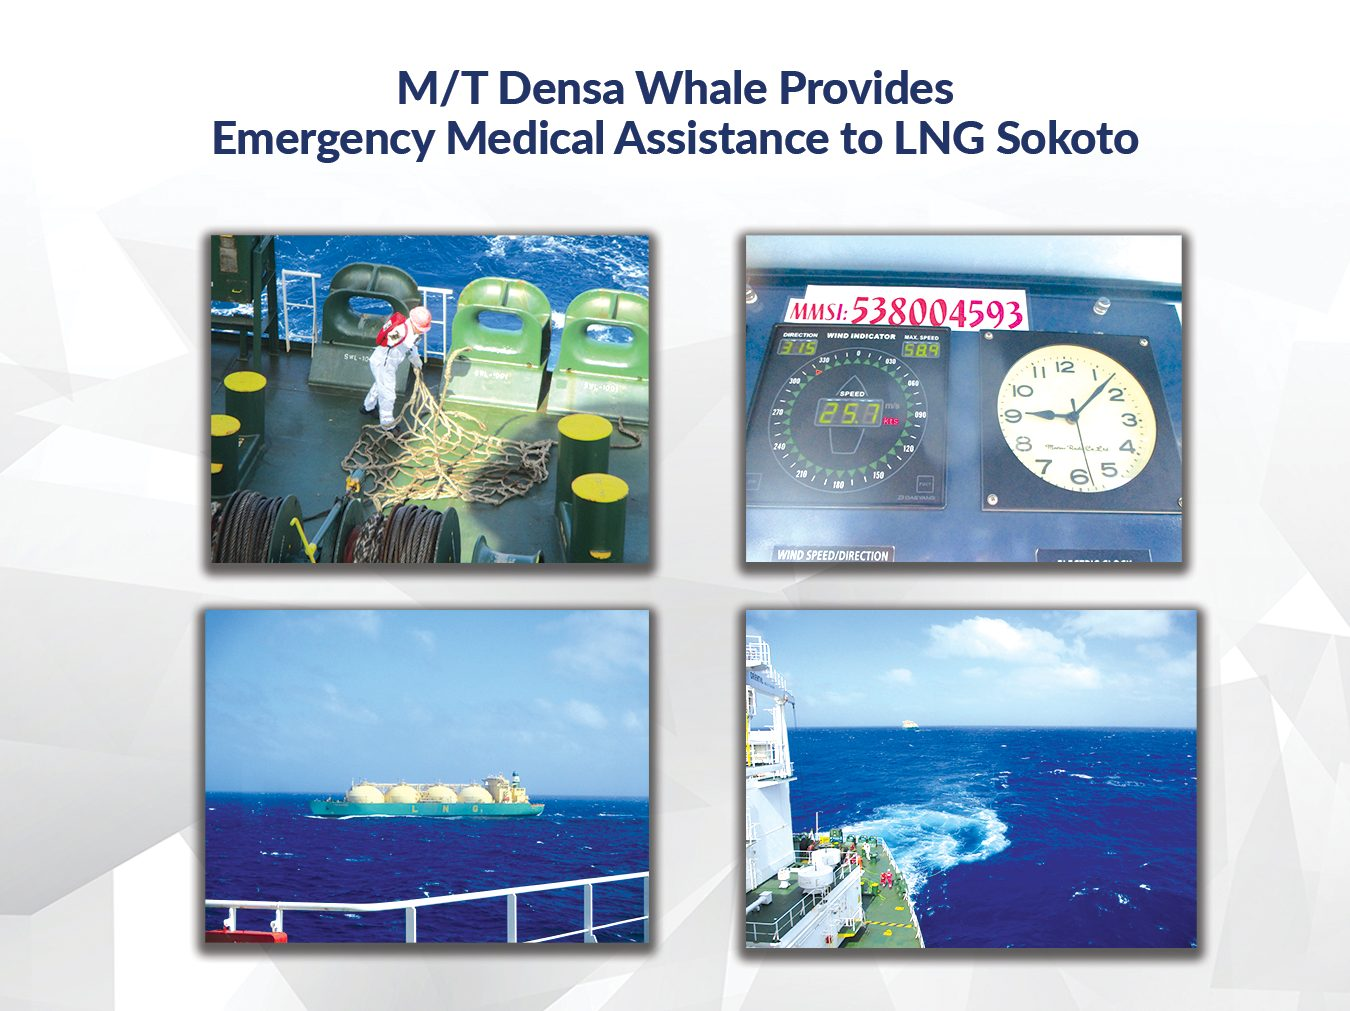 M/T Densa Whale Provides Emergency Medical Assistance to LNG Sokoto